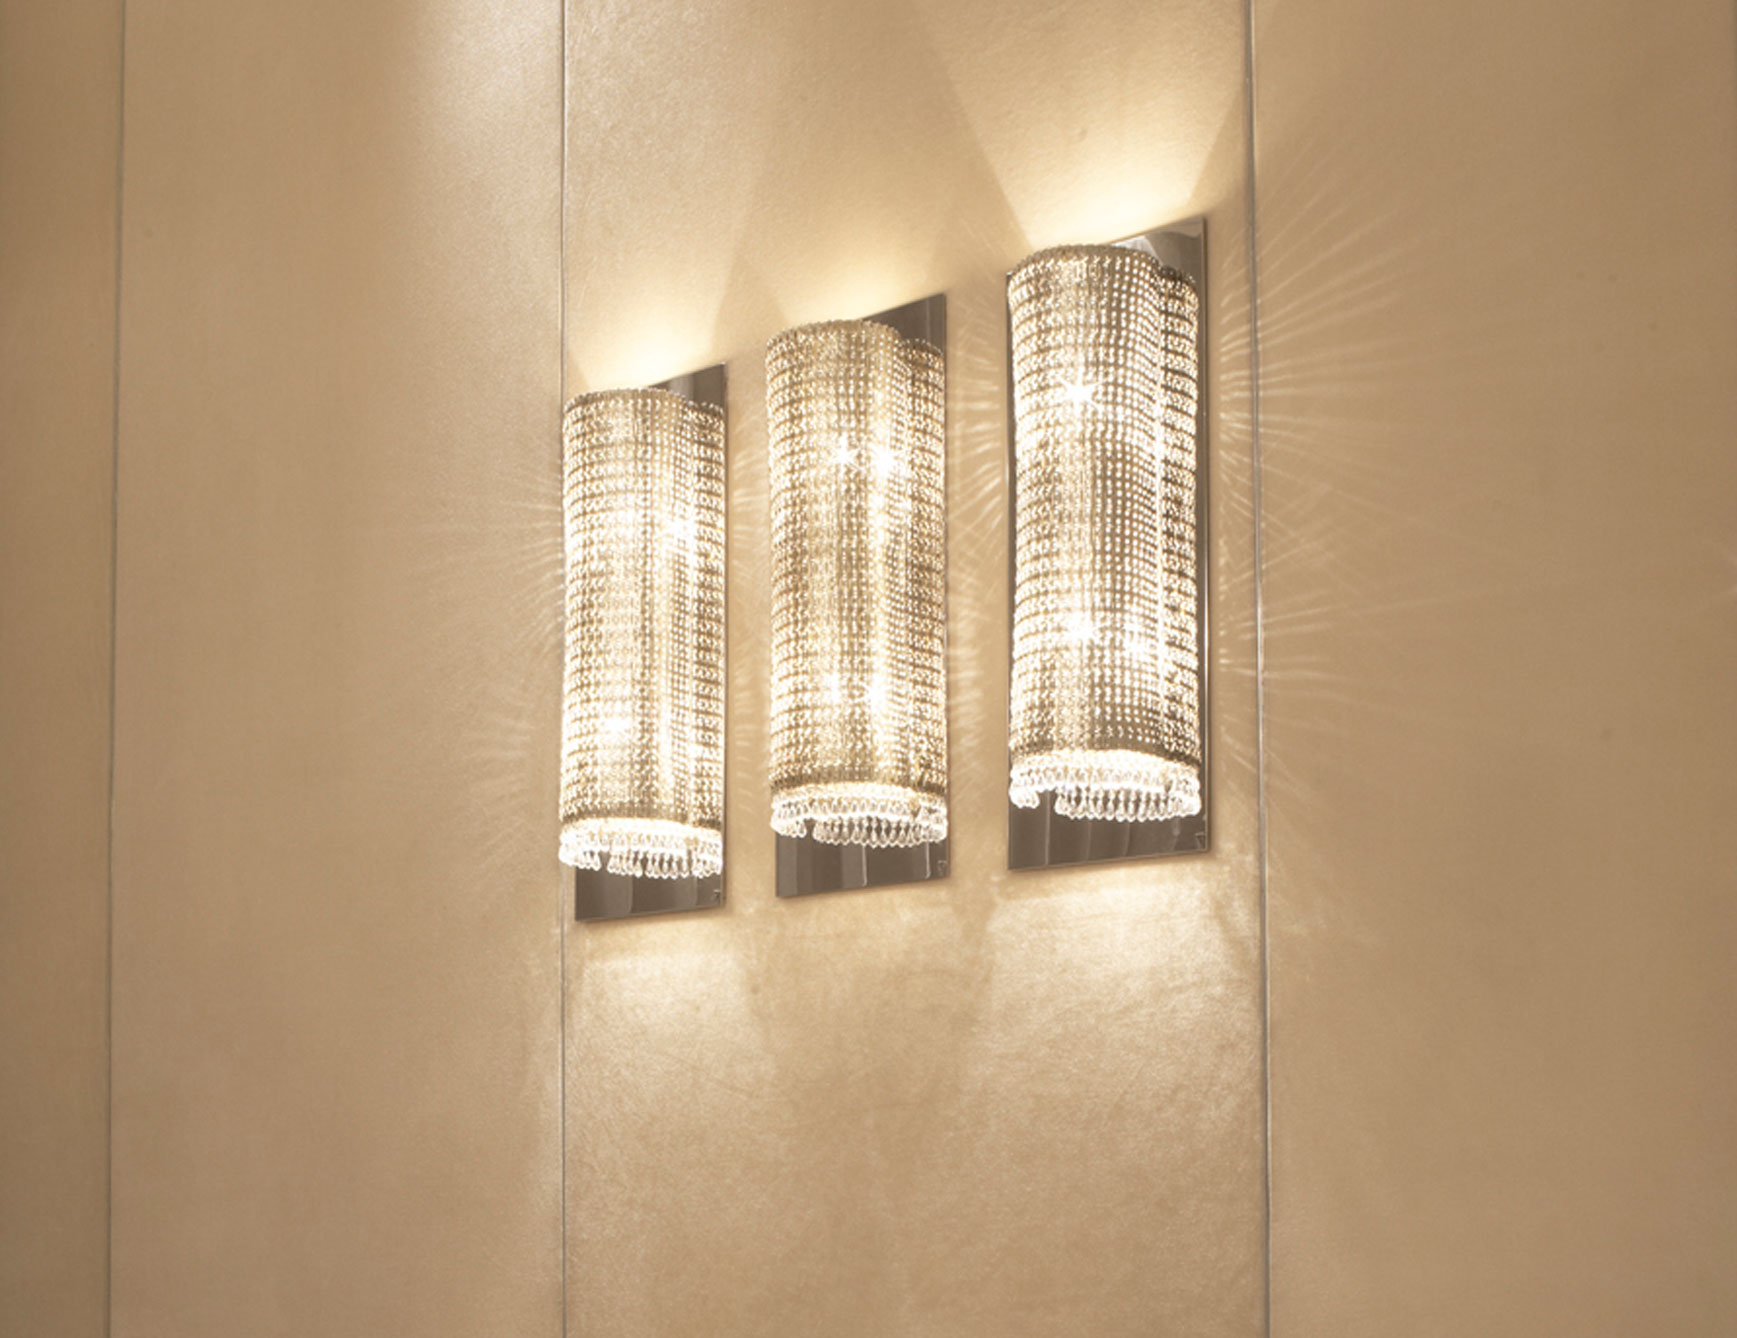 Murano wall lights the artisan lighting at your home warisan murano wall lights photo 5 mozeypictures Choice Image